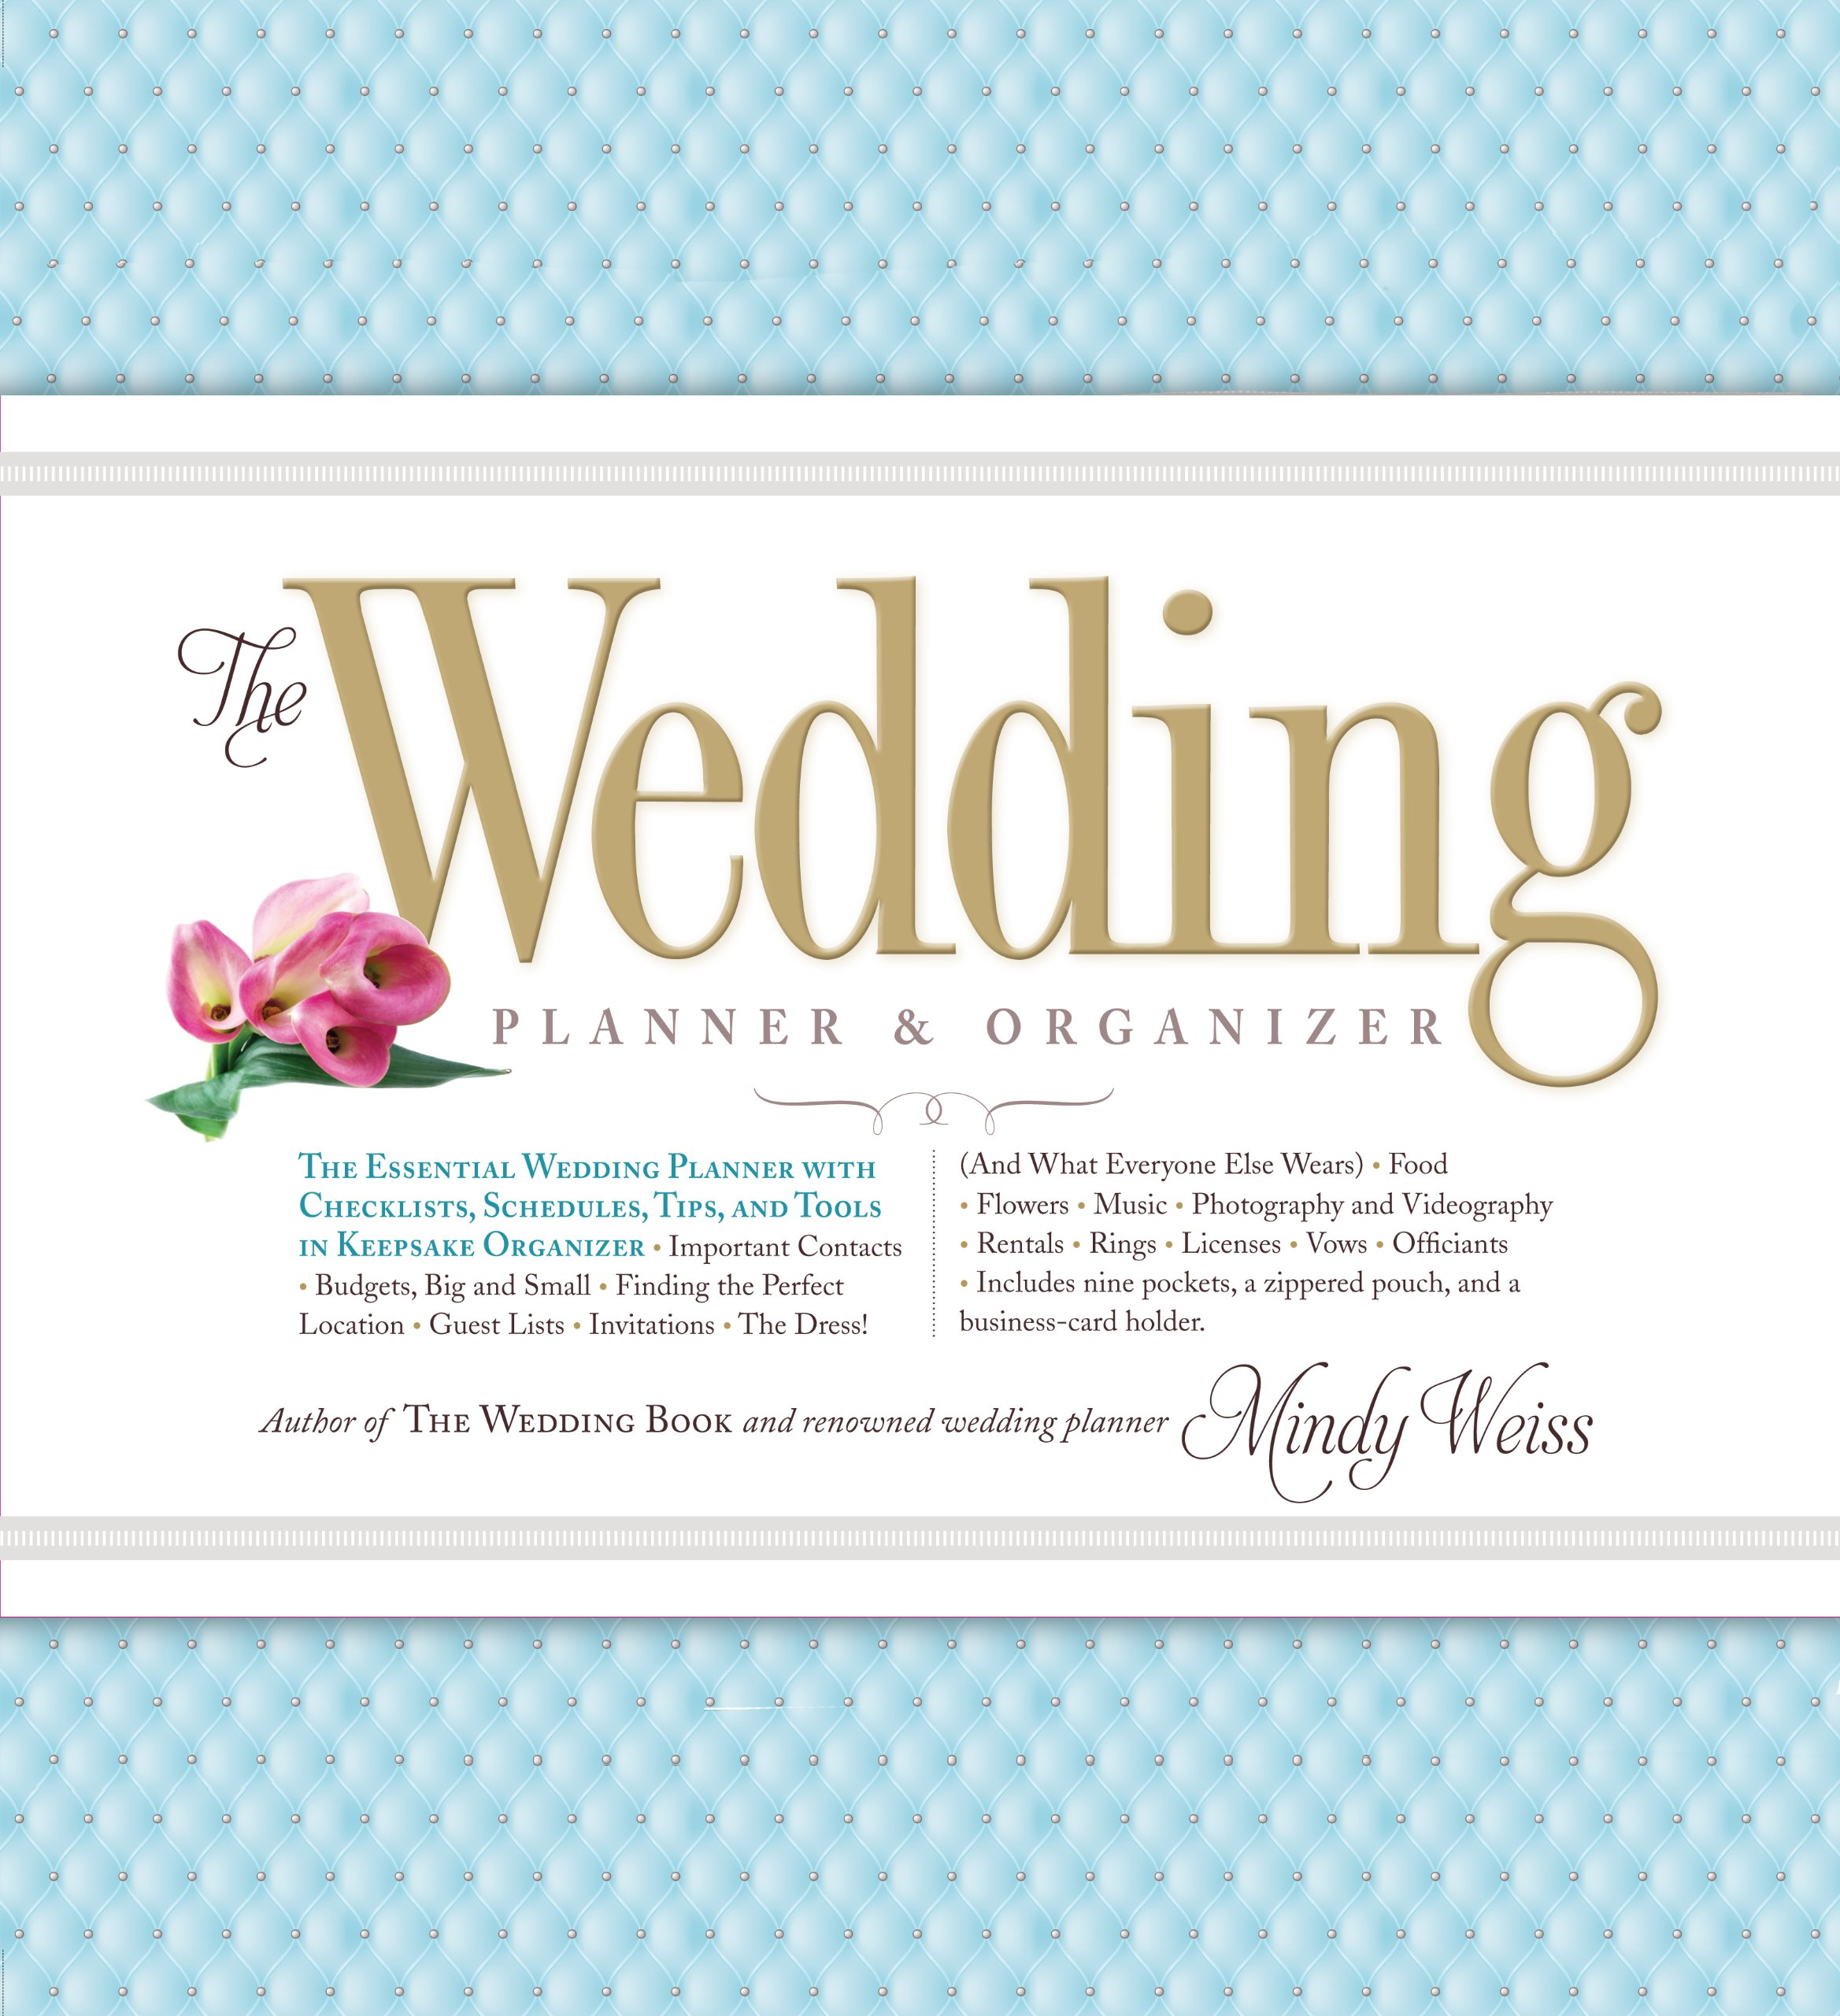 The Wedding Planner Organizer Mindy Weiss 9780761165972 Amazon Books